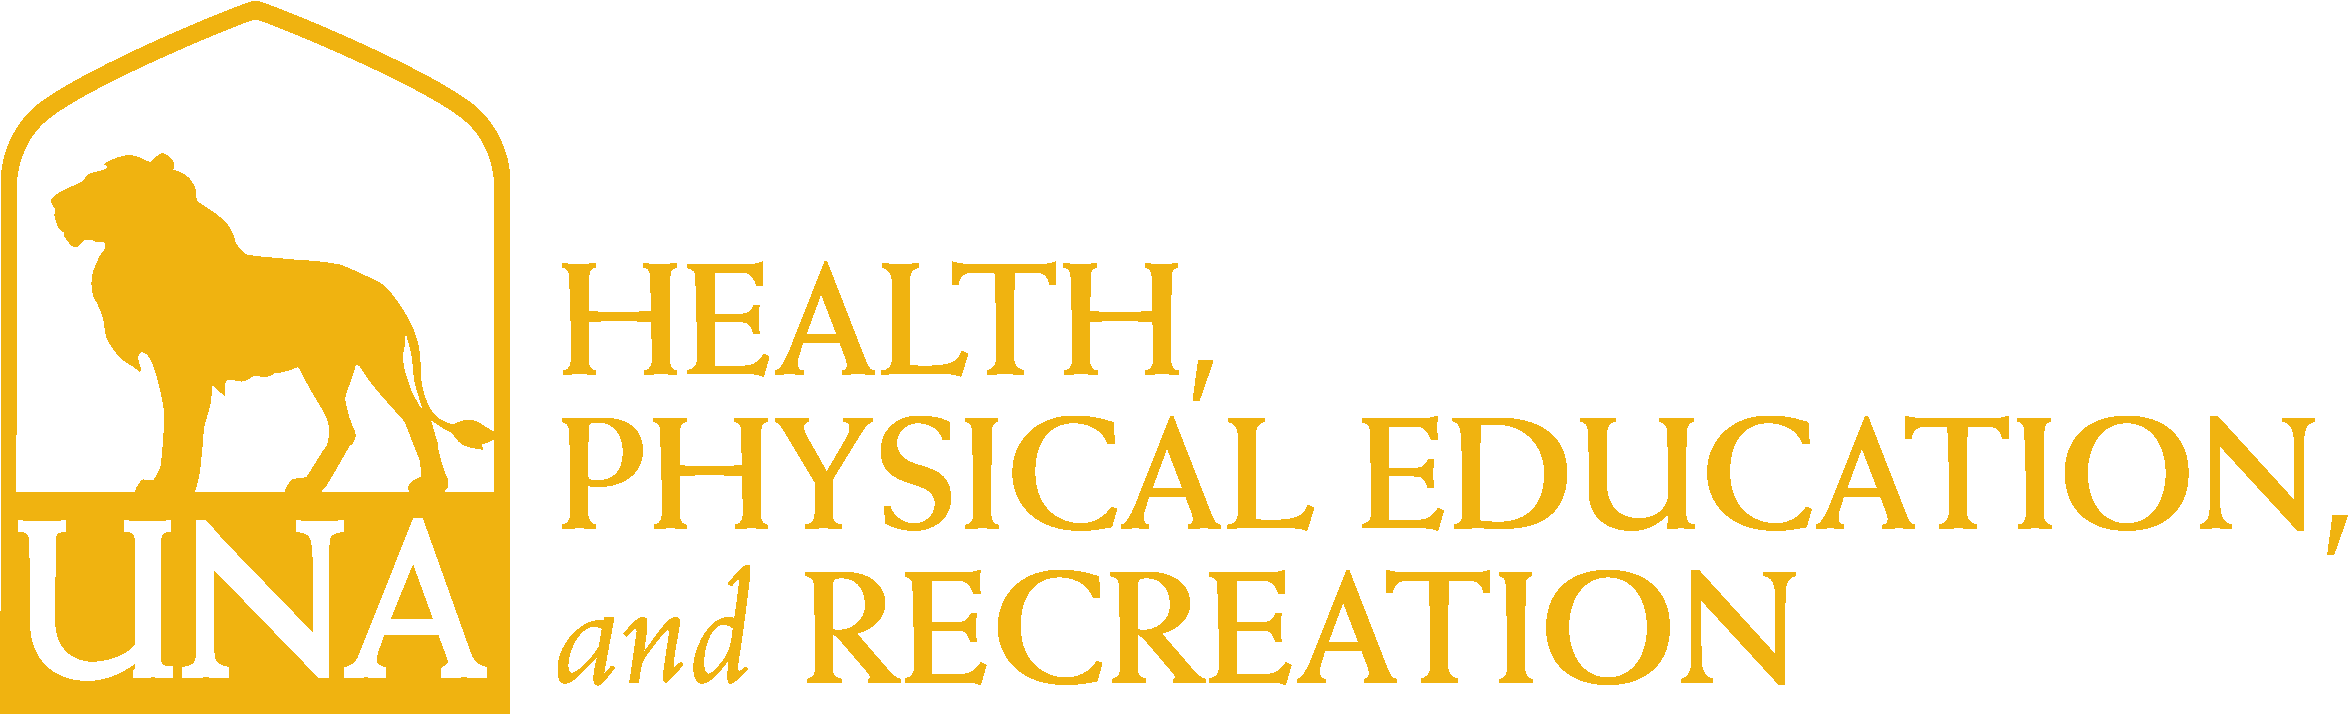 College of Education and Human Services - Health Physical Education & Recreation Logo - Gold - Version 3